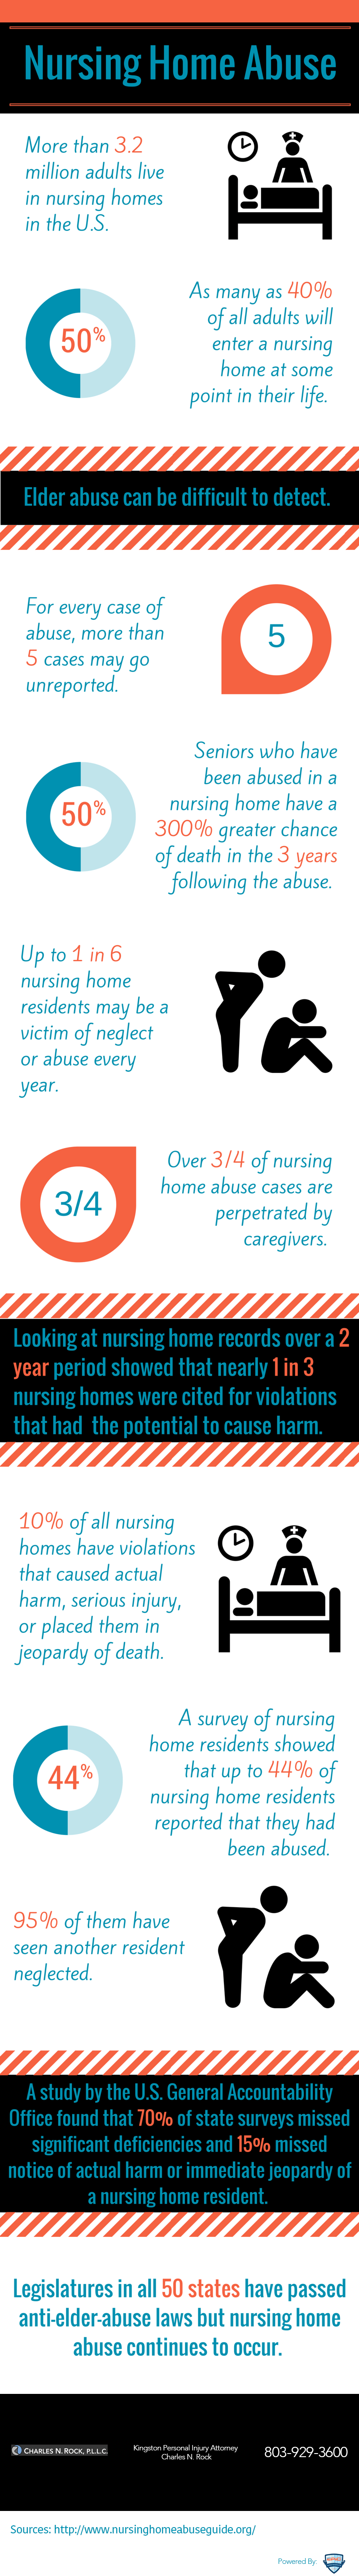 The Nursing Home Abuse Epidemic [Infographic]